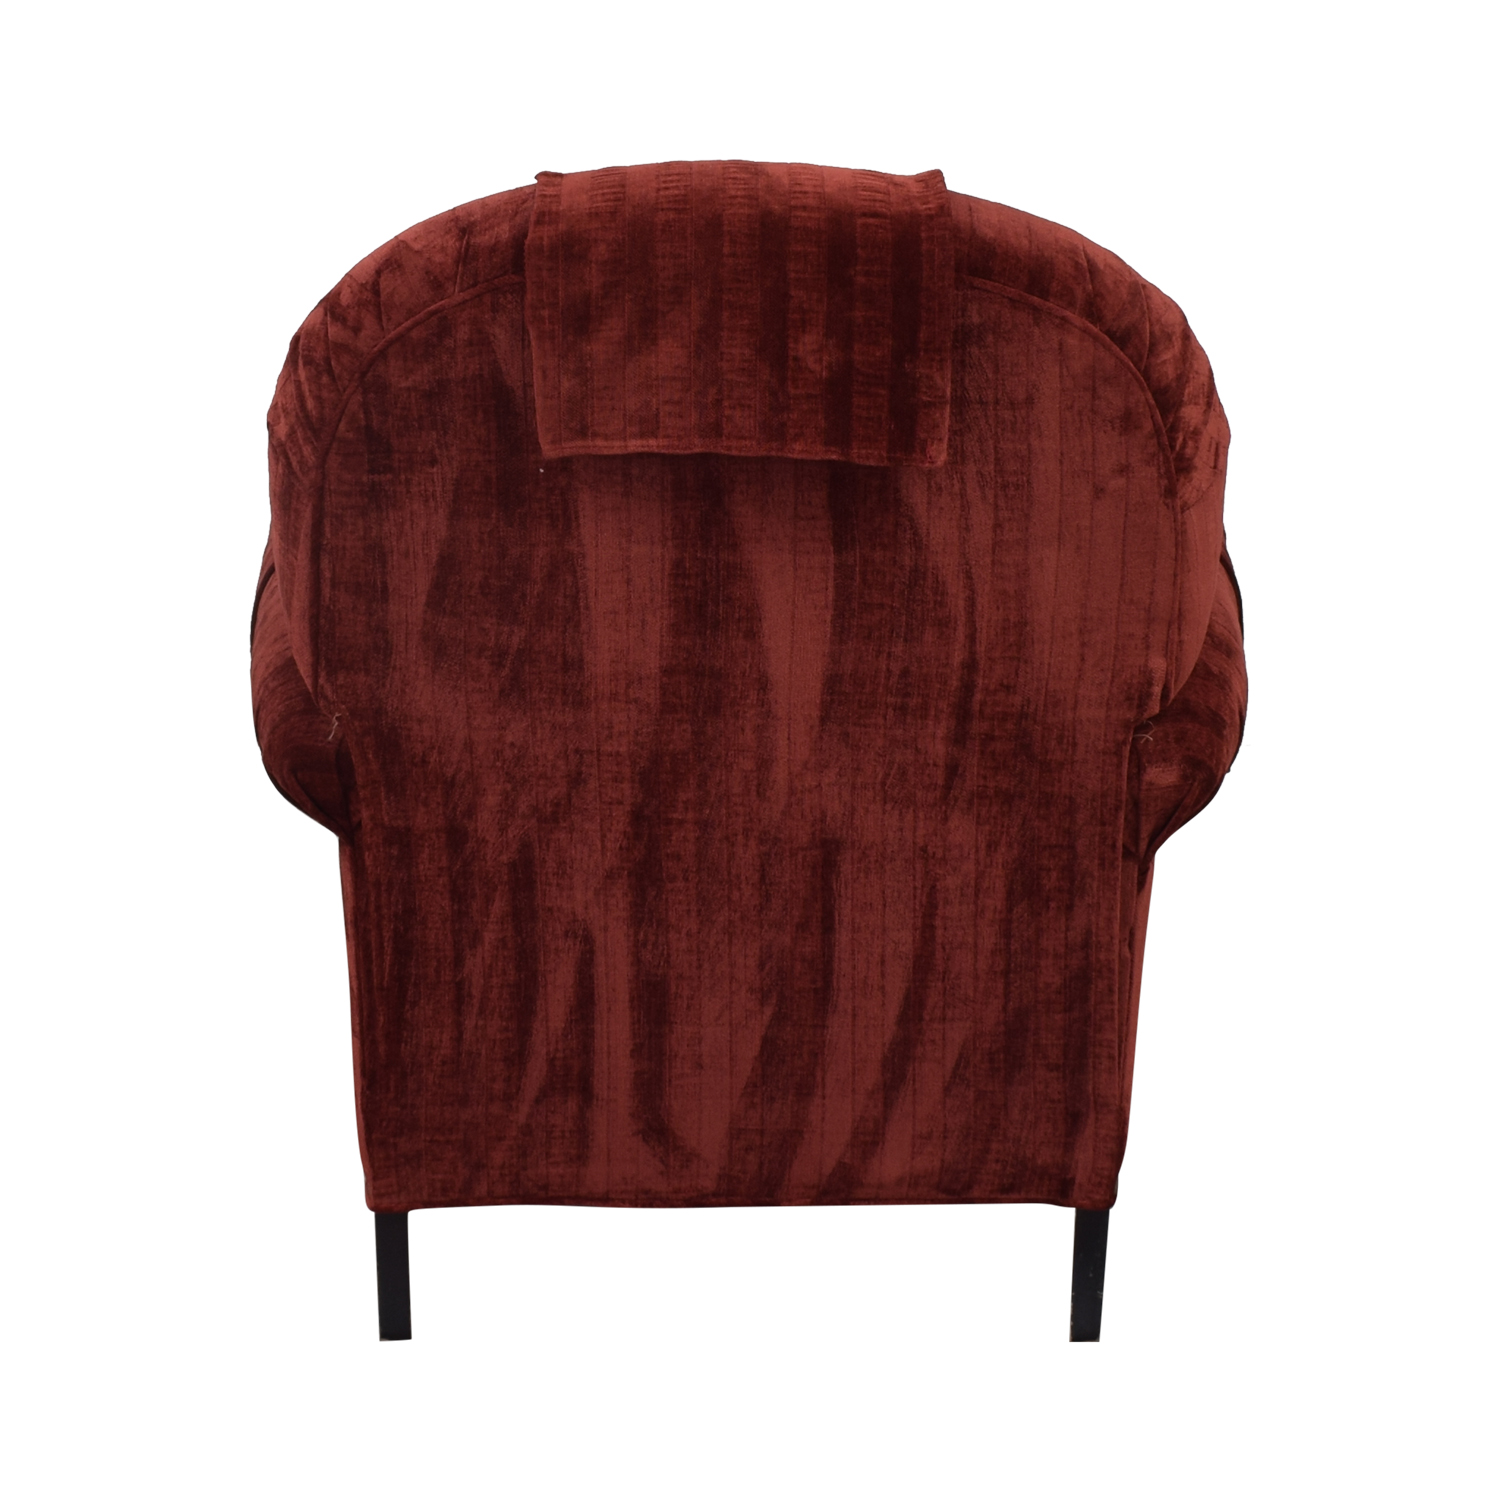 Vanguard Furniture Vanguard Furniture Club Recliner Chair price